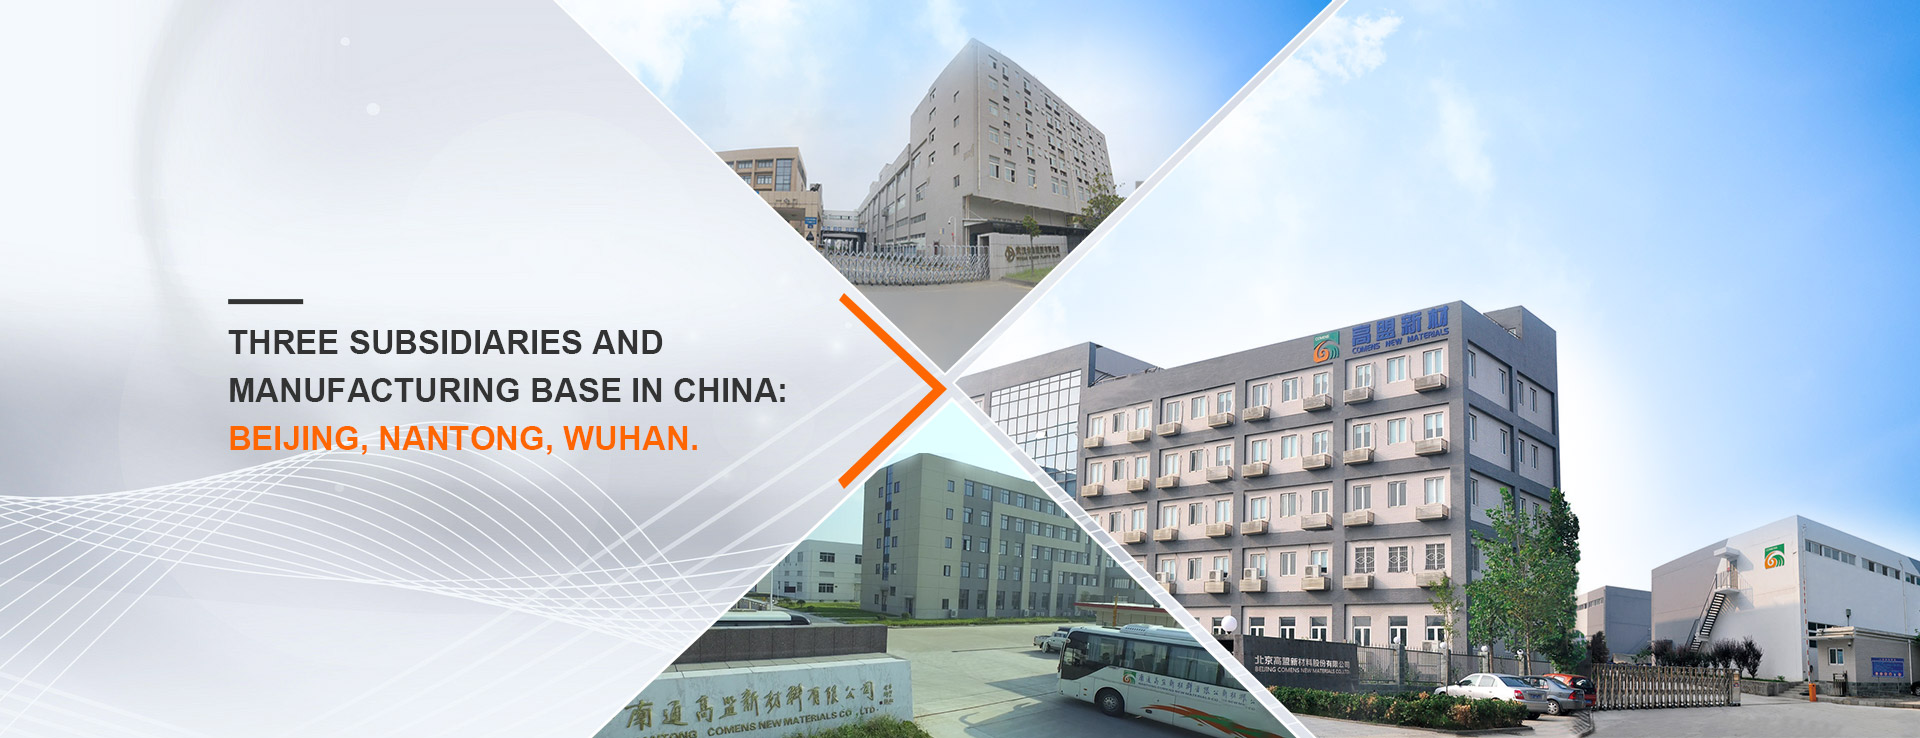 3 Subsidiaries and Manufacturing Base in China